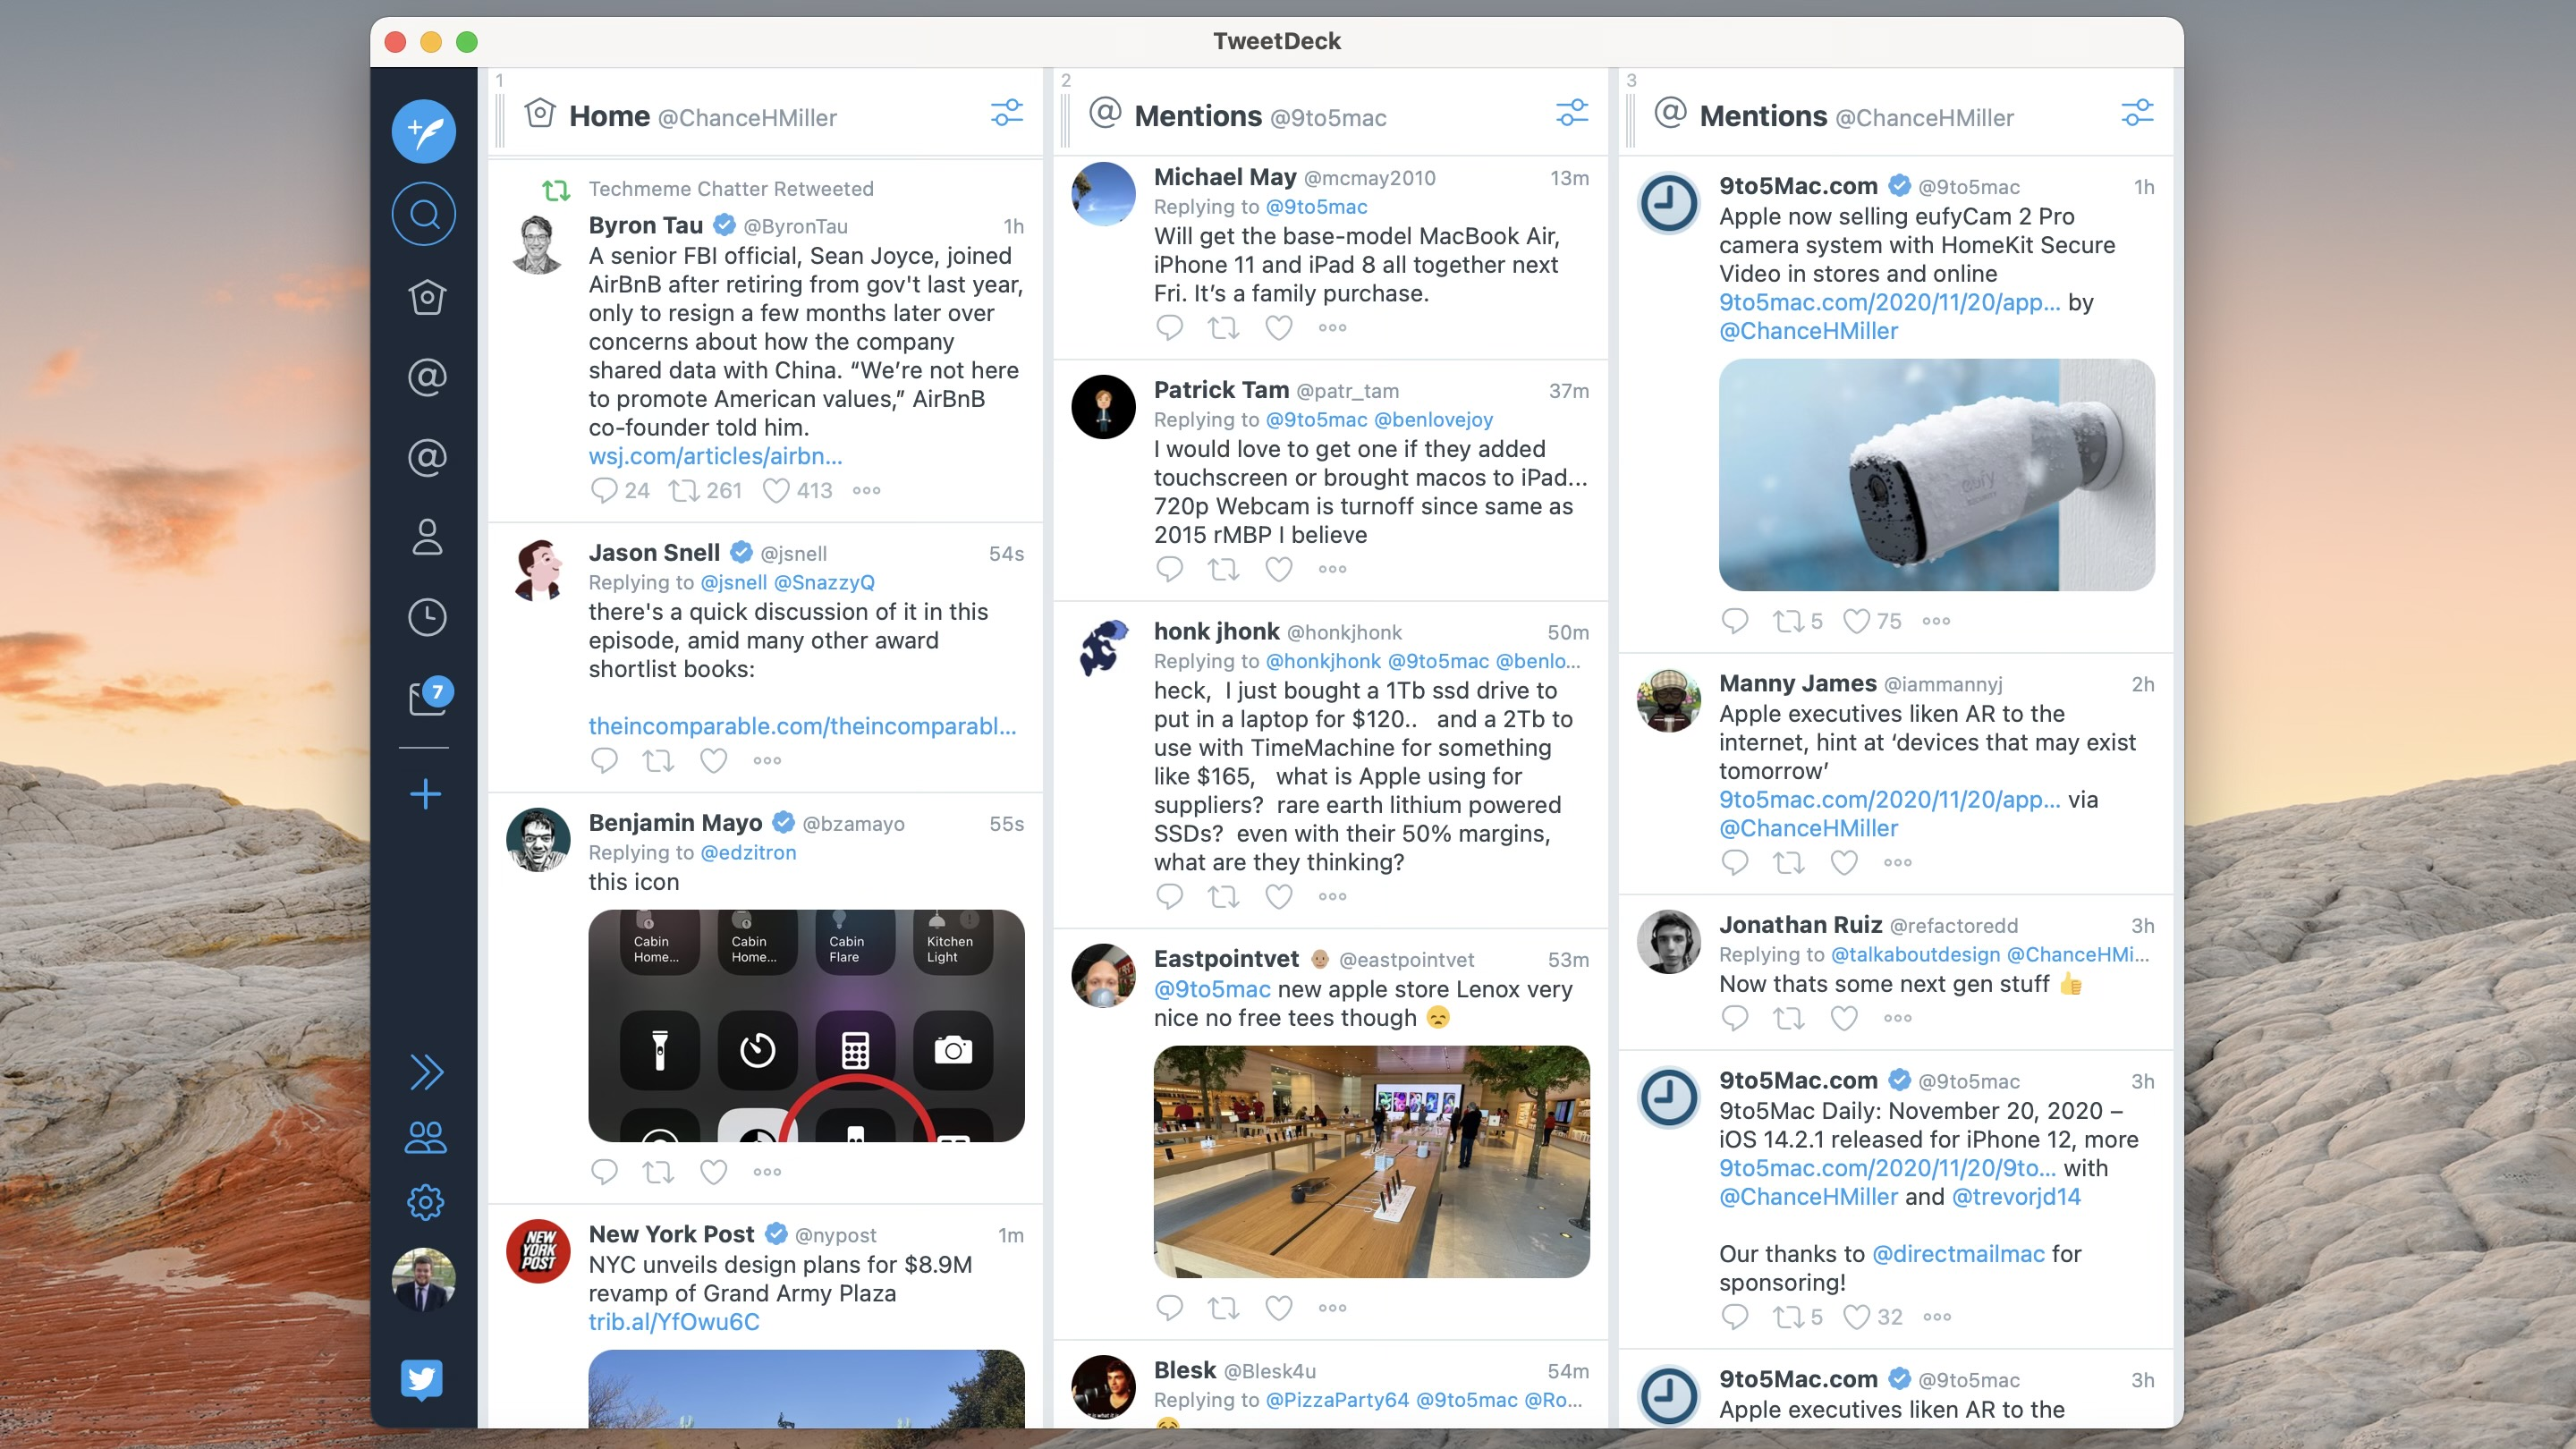 photo of TweetDeck for Mac updated to run natively on Apple Silicon M1 chip image